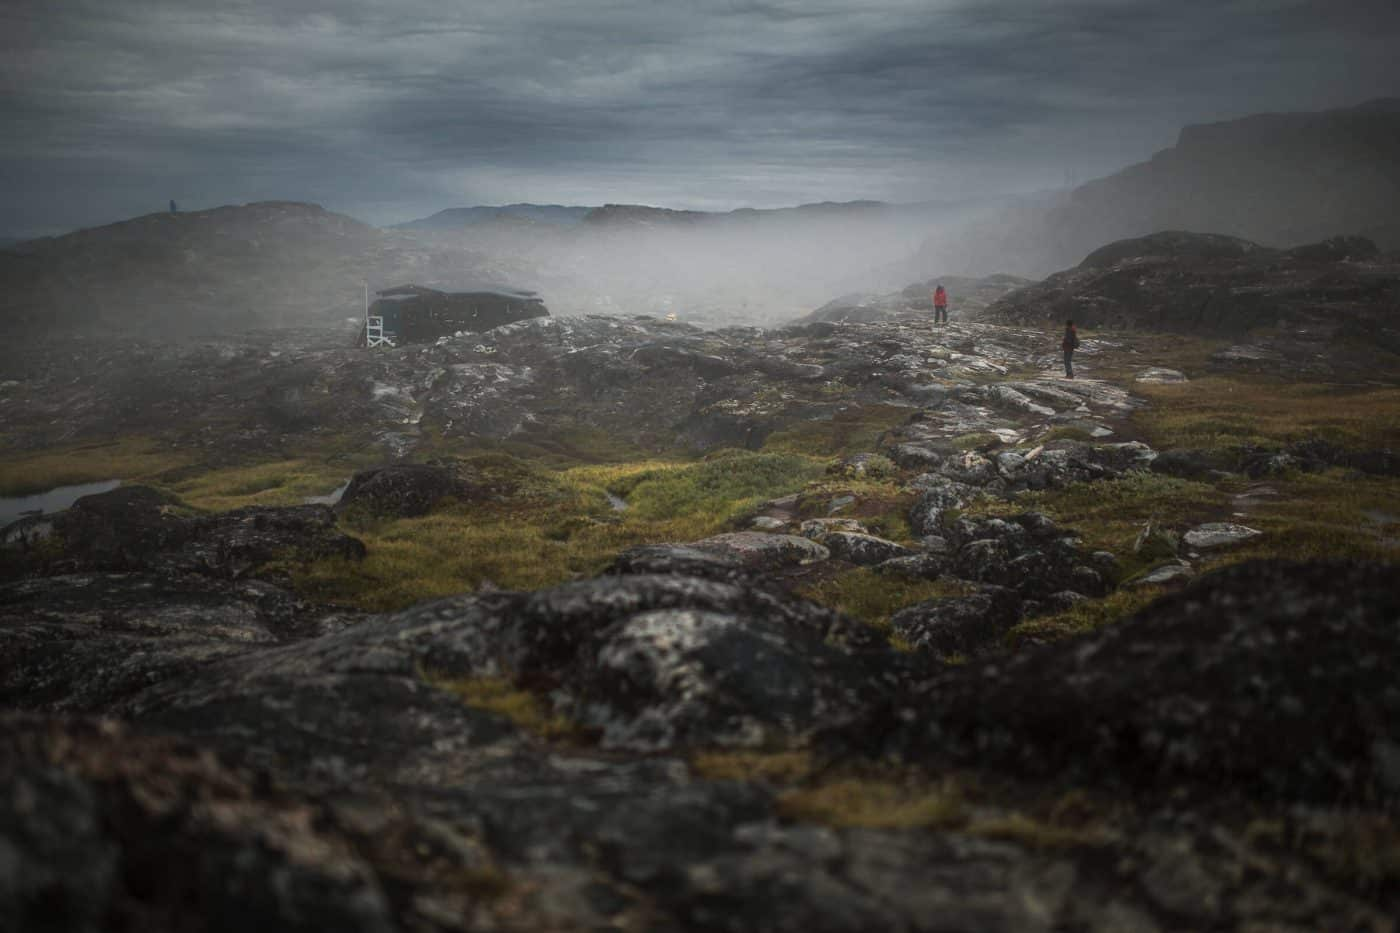 Hikers in the fog on a trail near Ilulissat in Greenland. By Mads Pihl